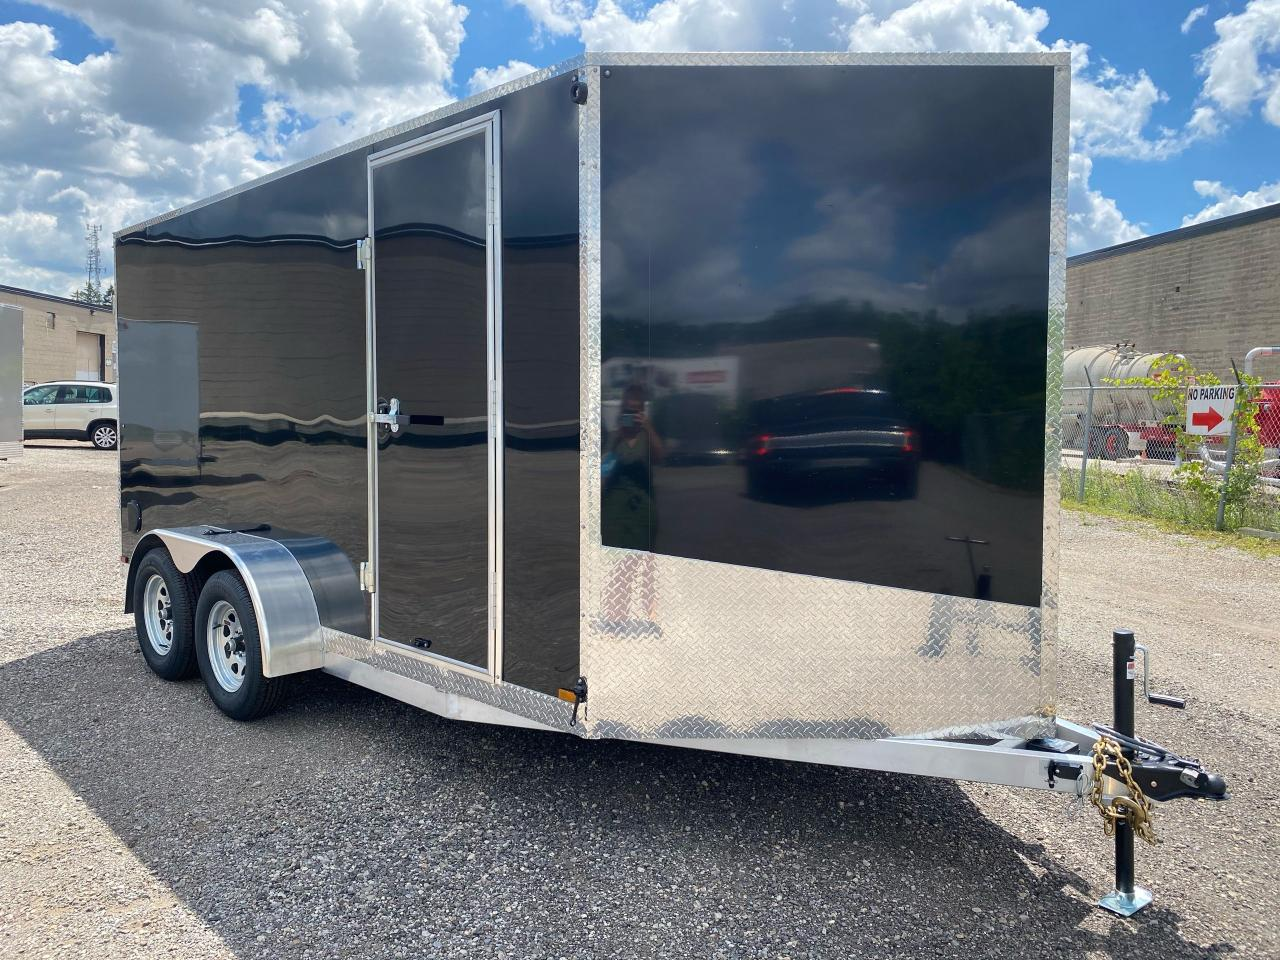 2020 Canadian Trailer Company 7x14 V Nose Cargo Trailer